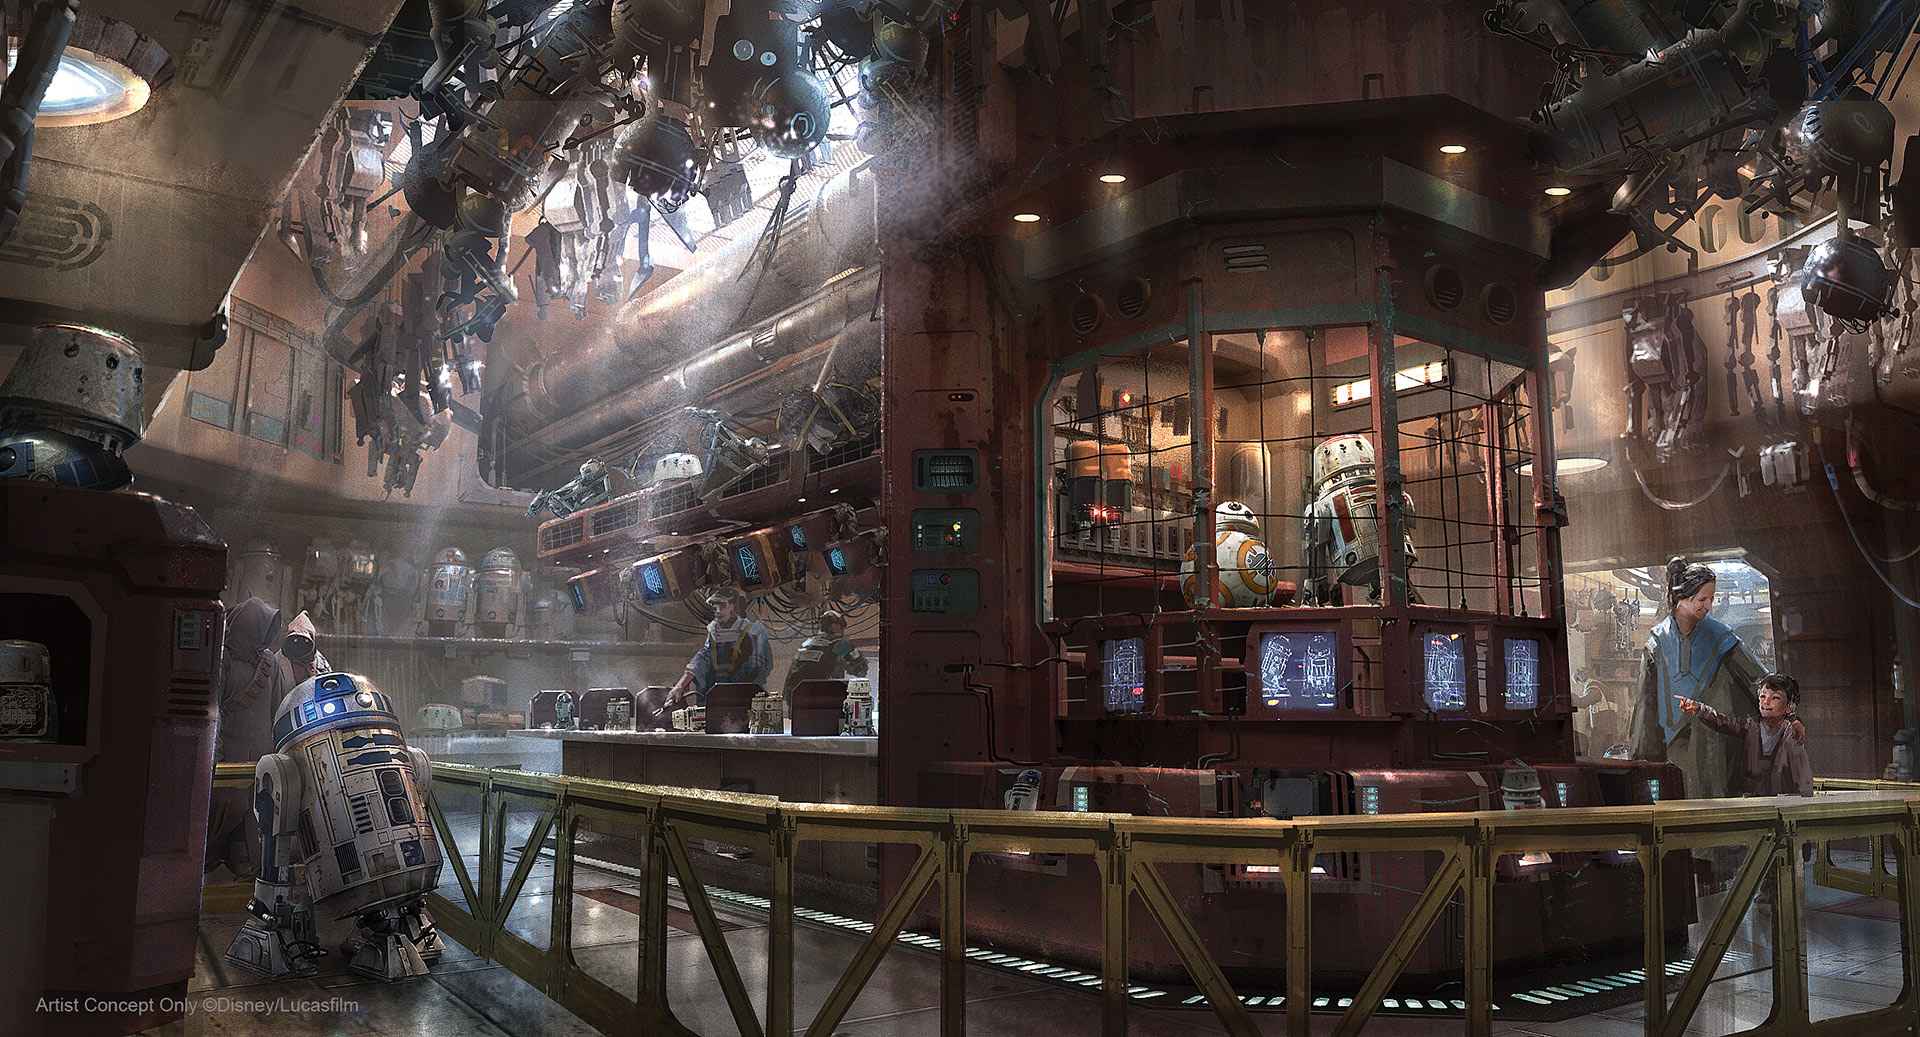 Droid Depot at Star Wars: Galaxy's Edge